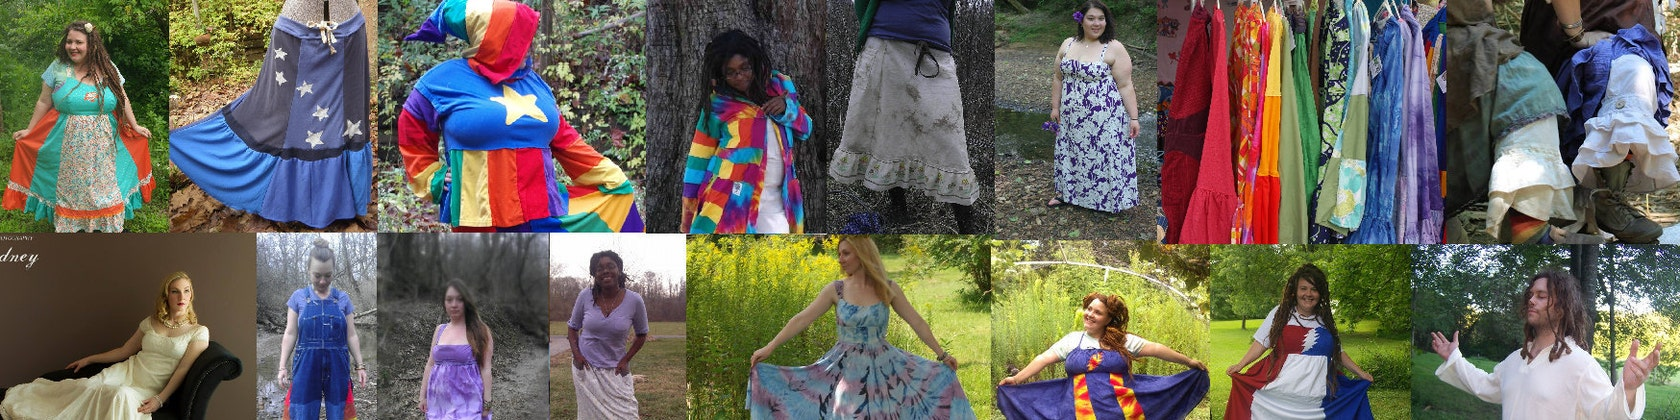 9230297198c9 Eco-Friendly Upcycled Clothing for Human Beings by knottymama